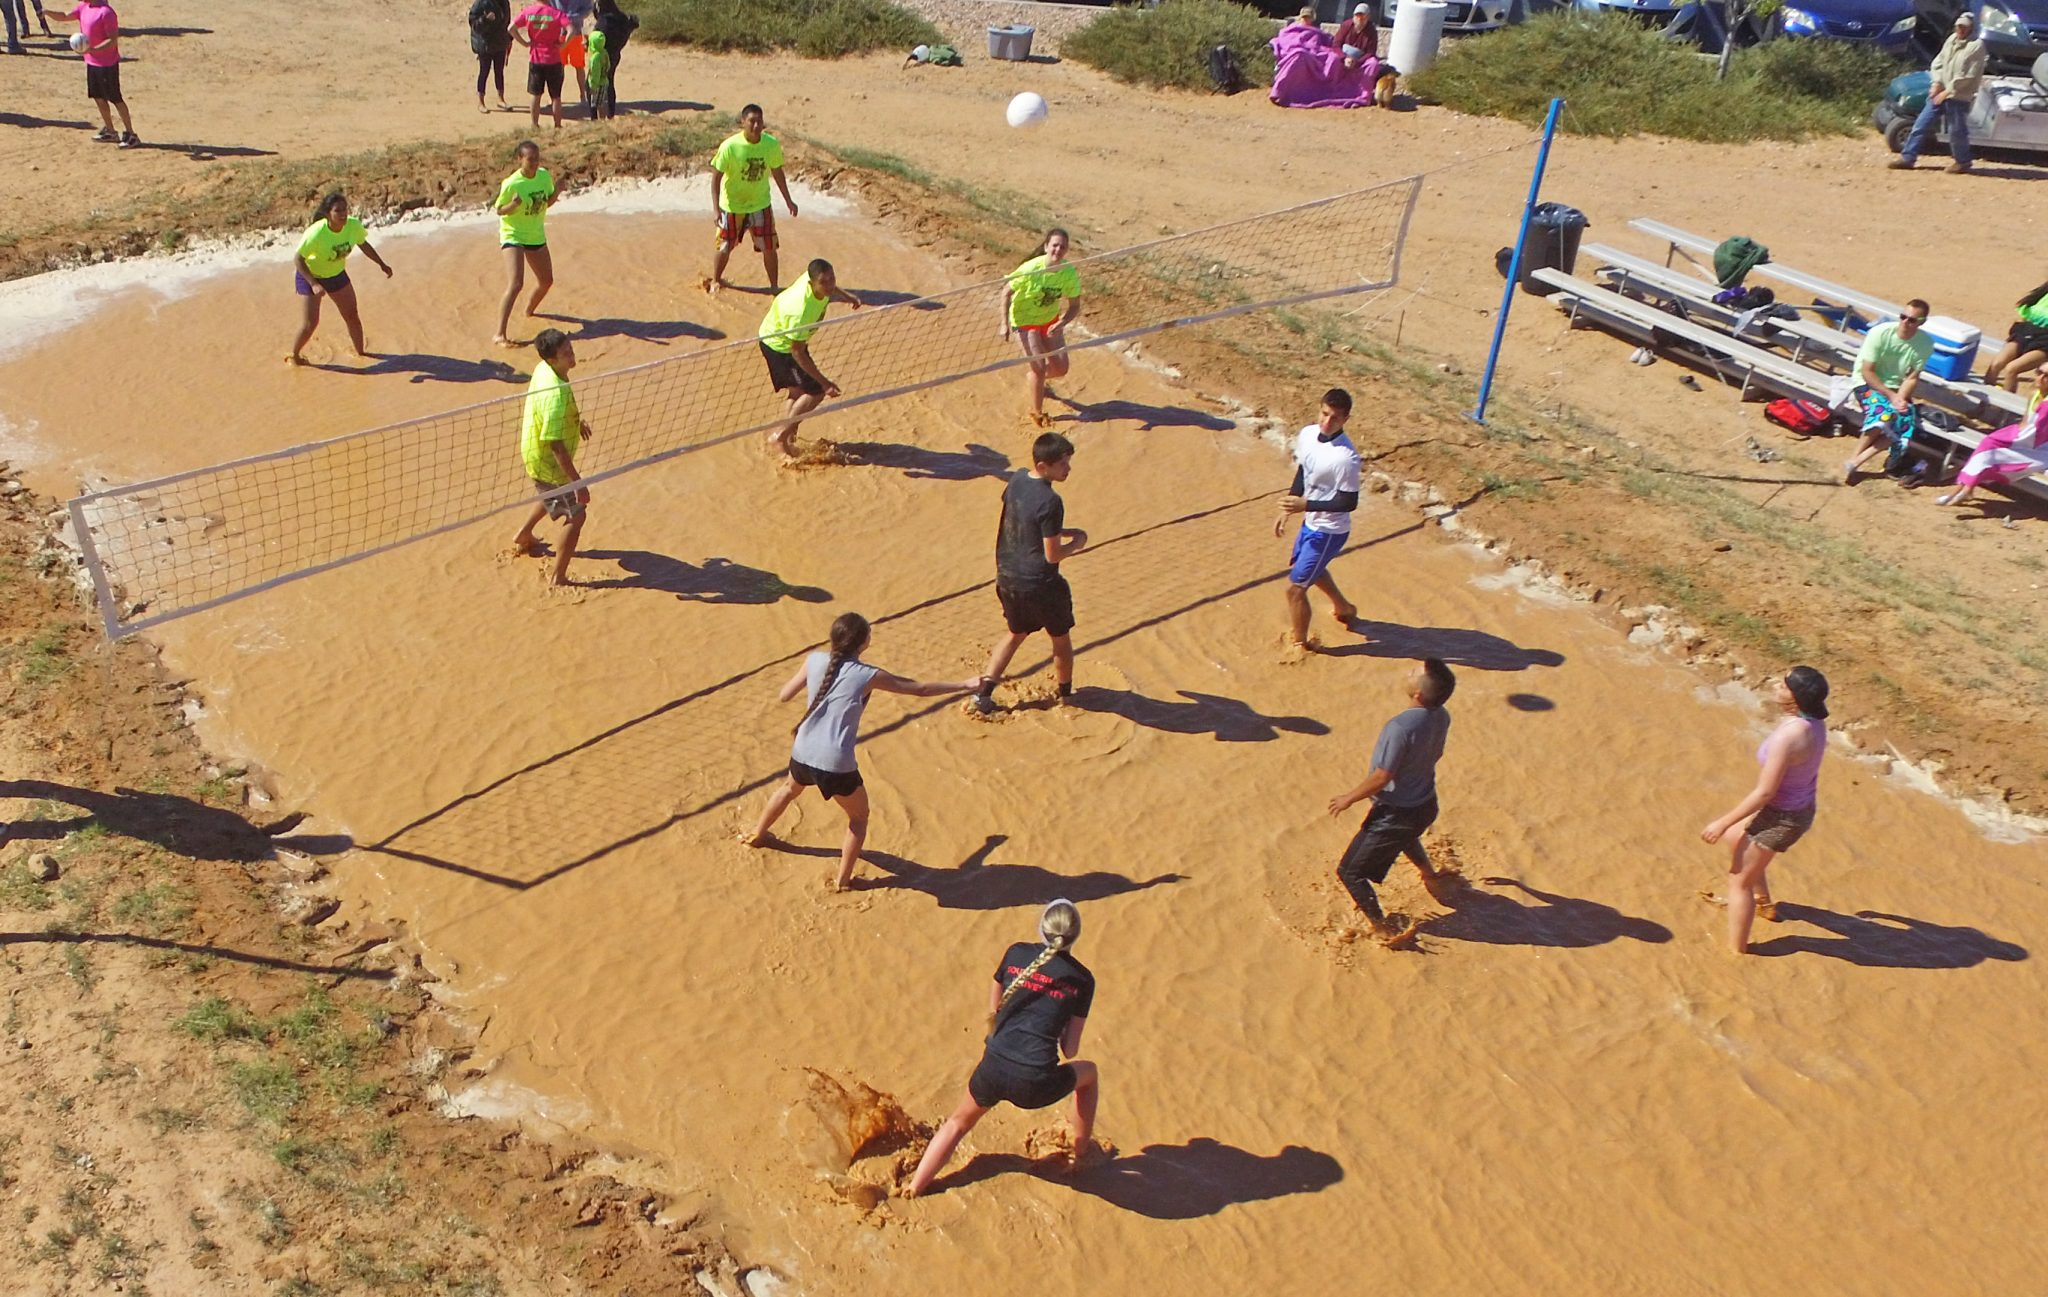 Mudd Volleyball Saturday